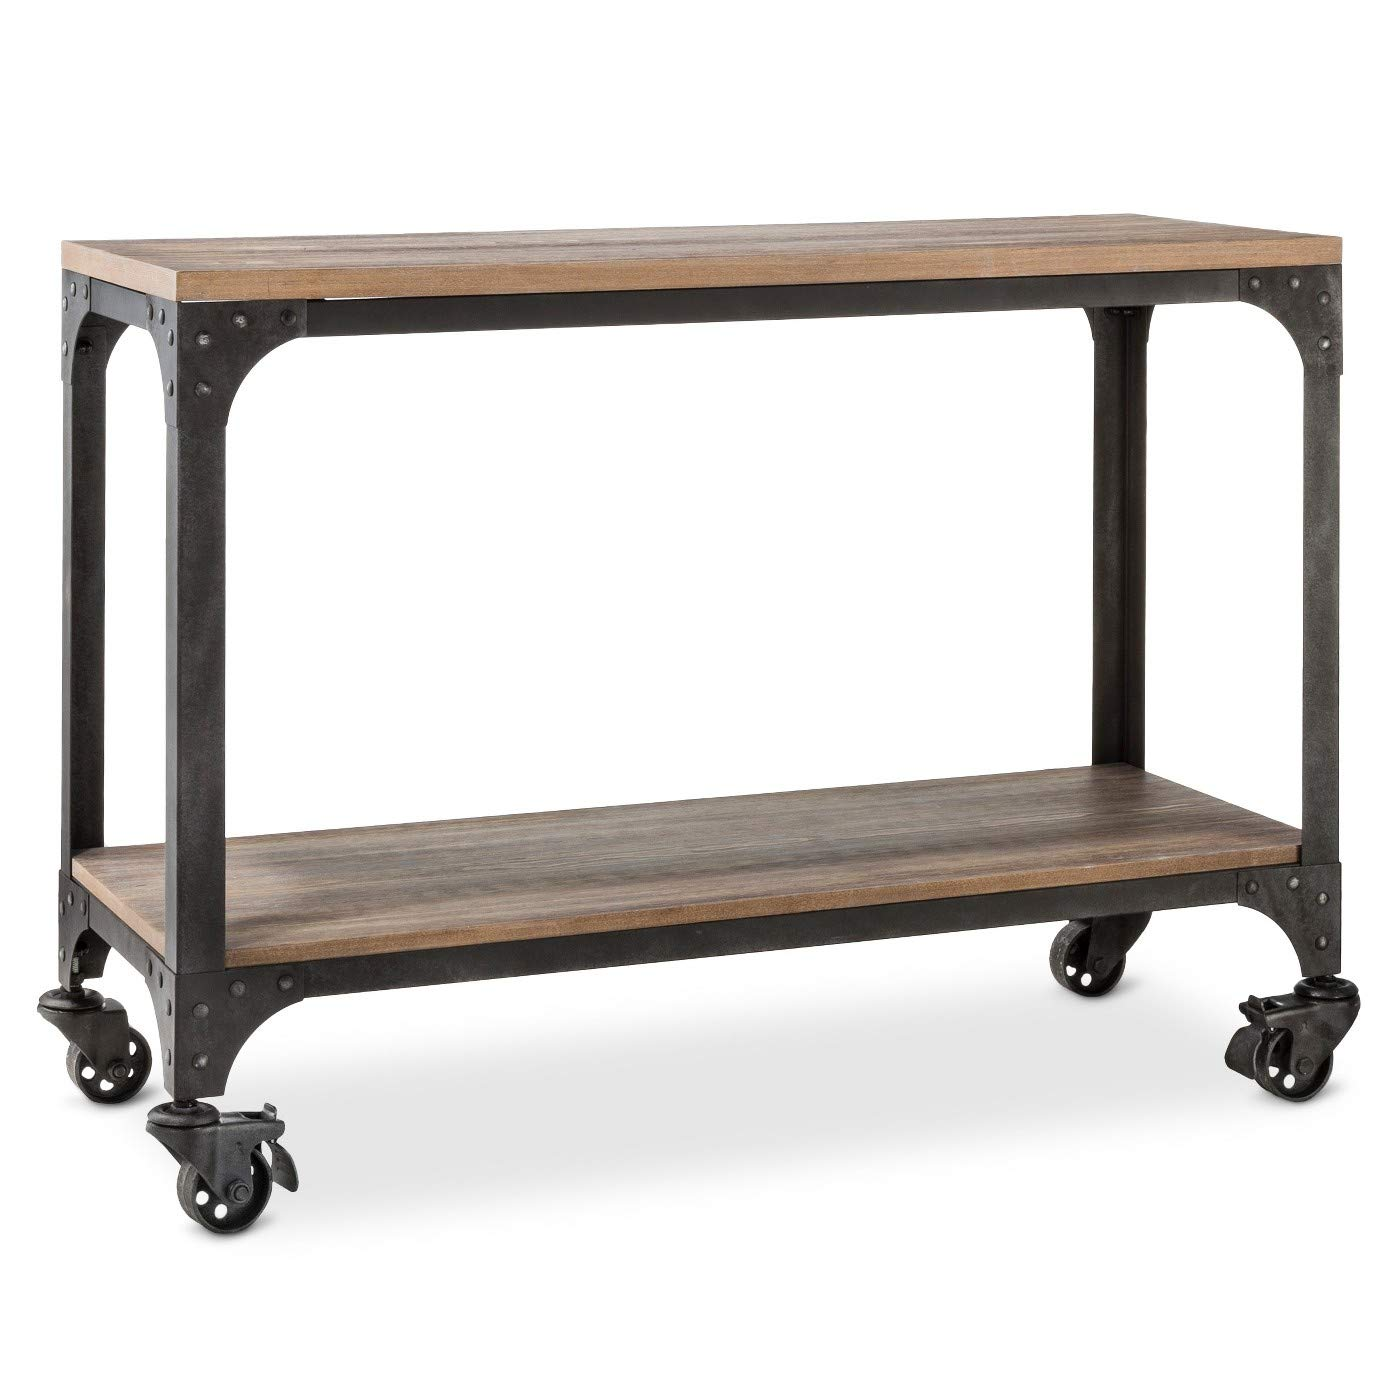 ecom franklin console table the industrial threshold accent kitchen dining glass top lamp pottery barn sofa drum shades pineapple metal bedside outdoor grill driftwood marble